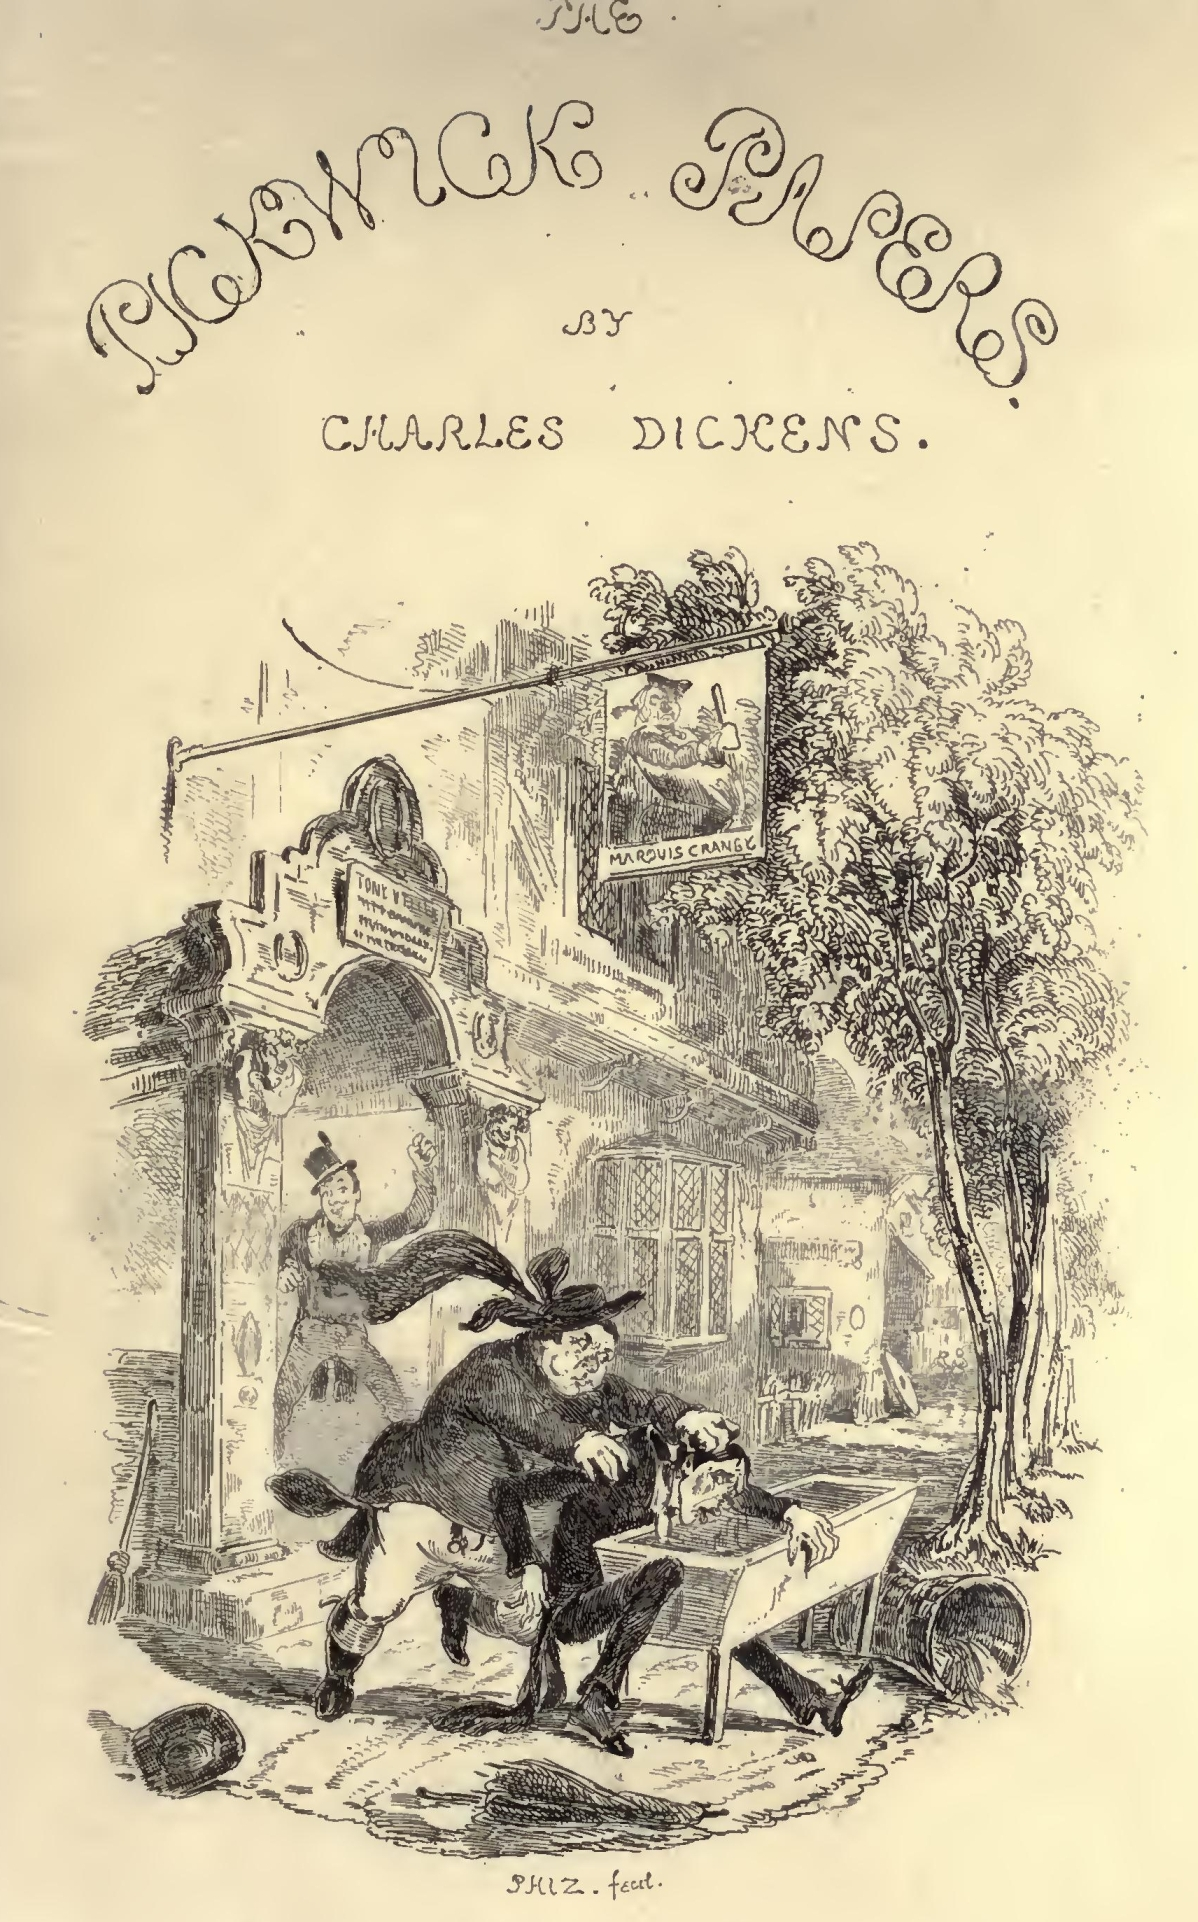 Charles Dickens Essay Topics To Write About | Topics